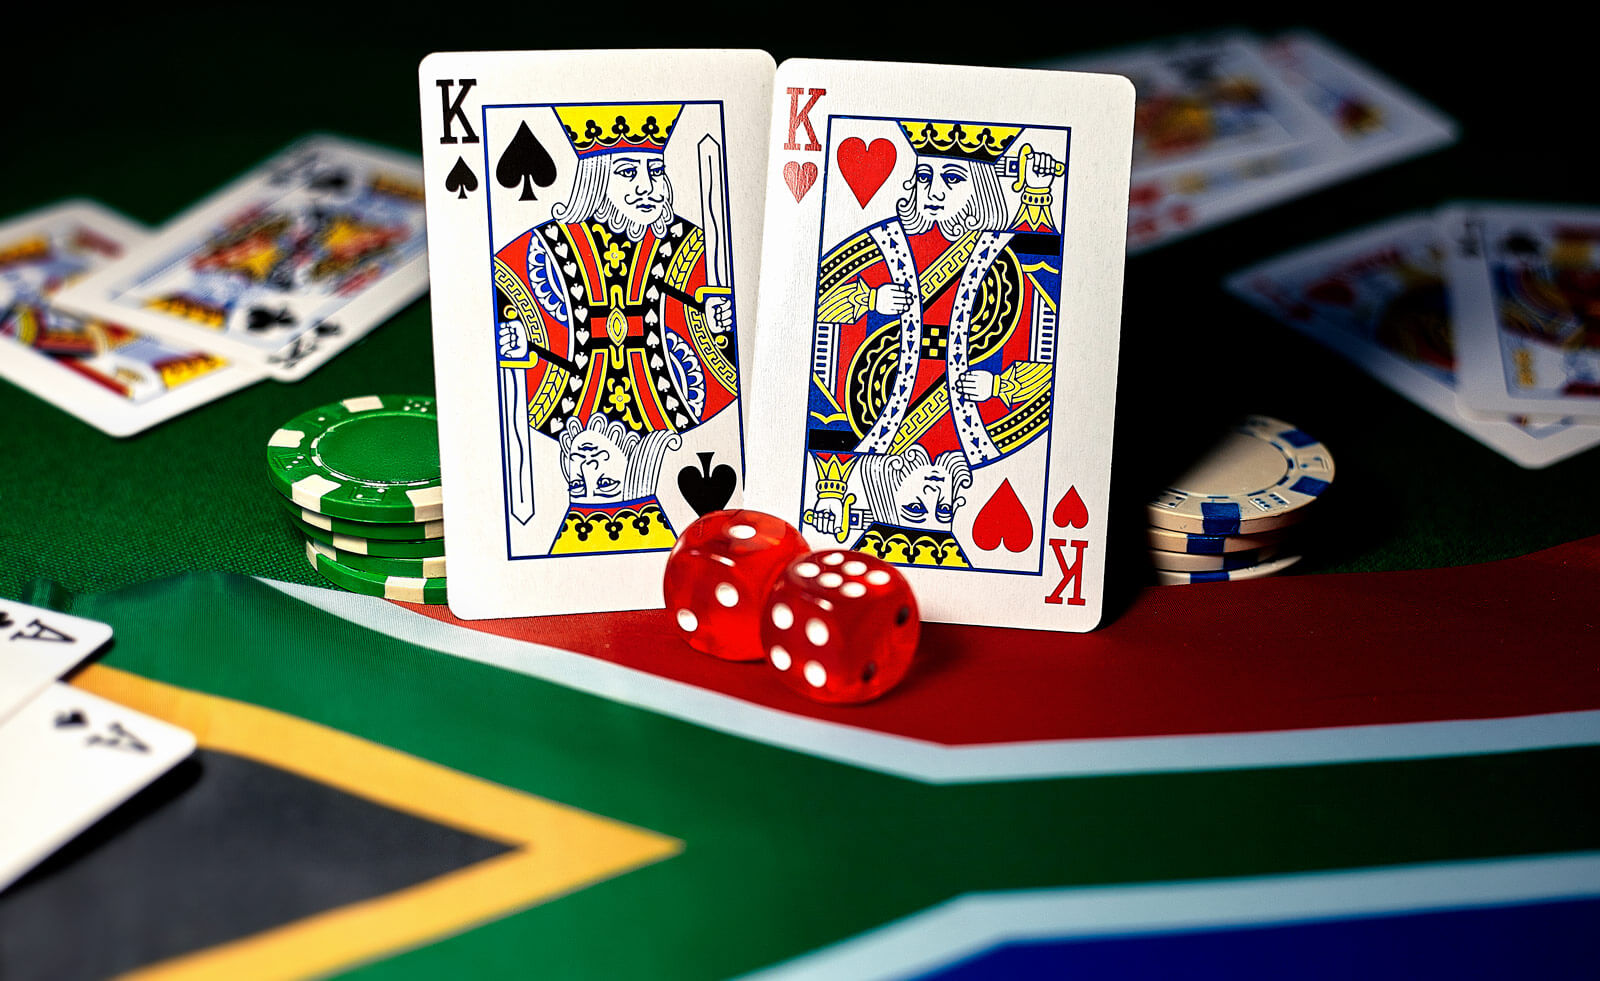 Casino Game Poker Chips Dices Cards Gambling South African Flag